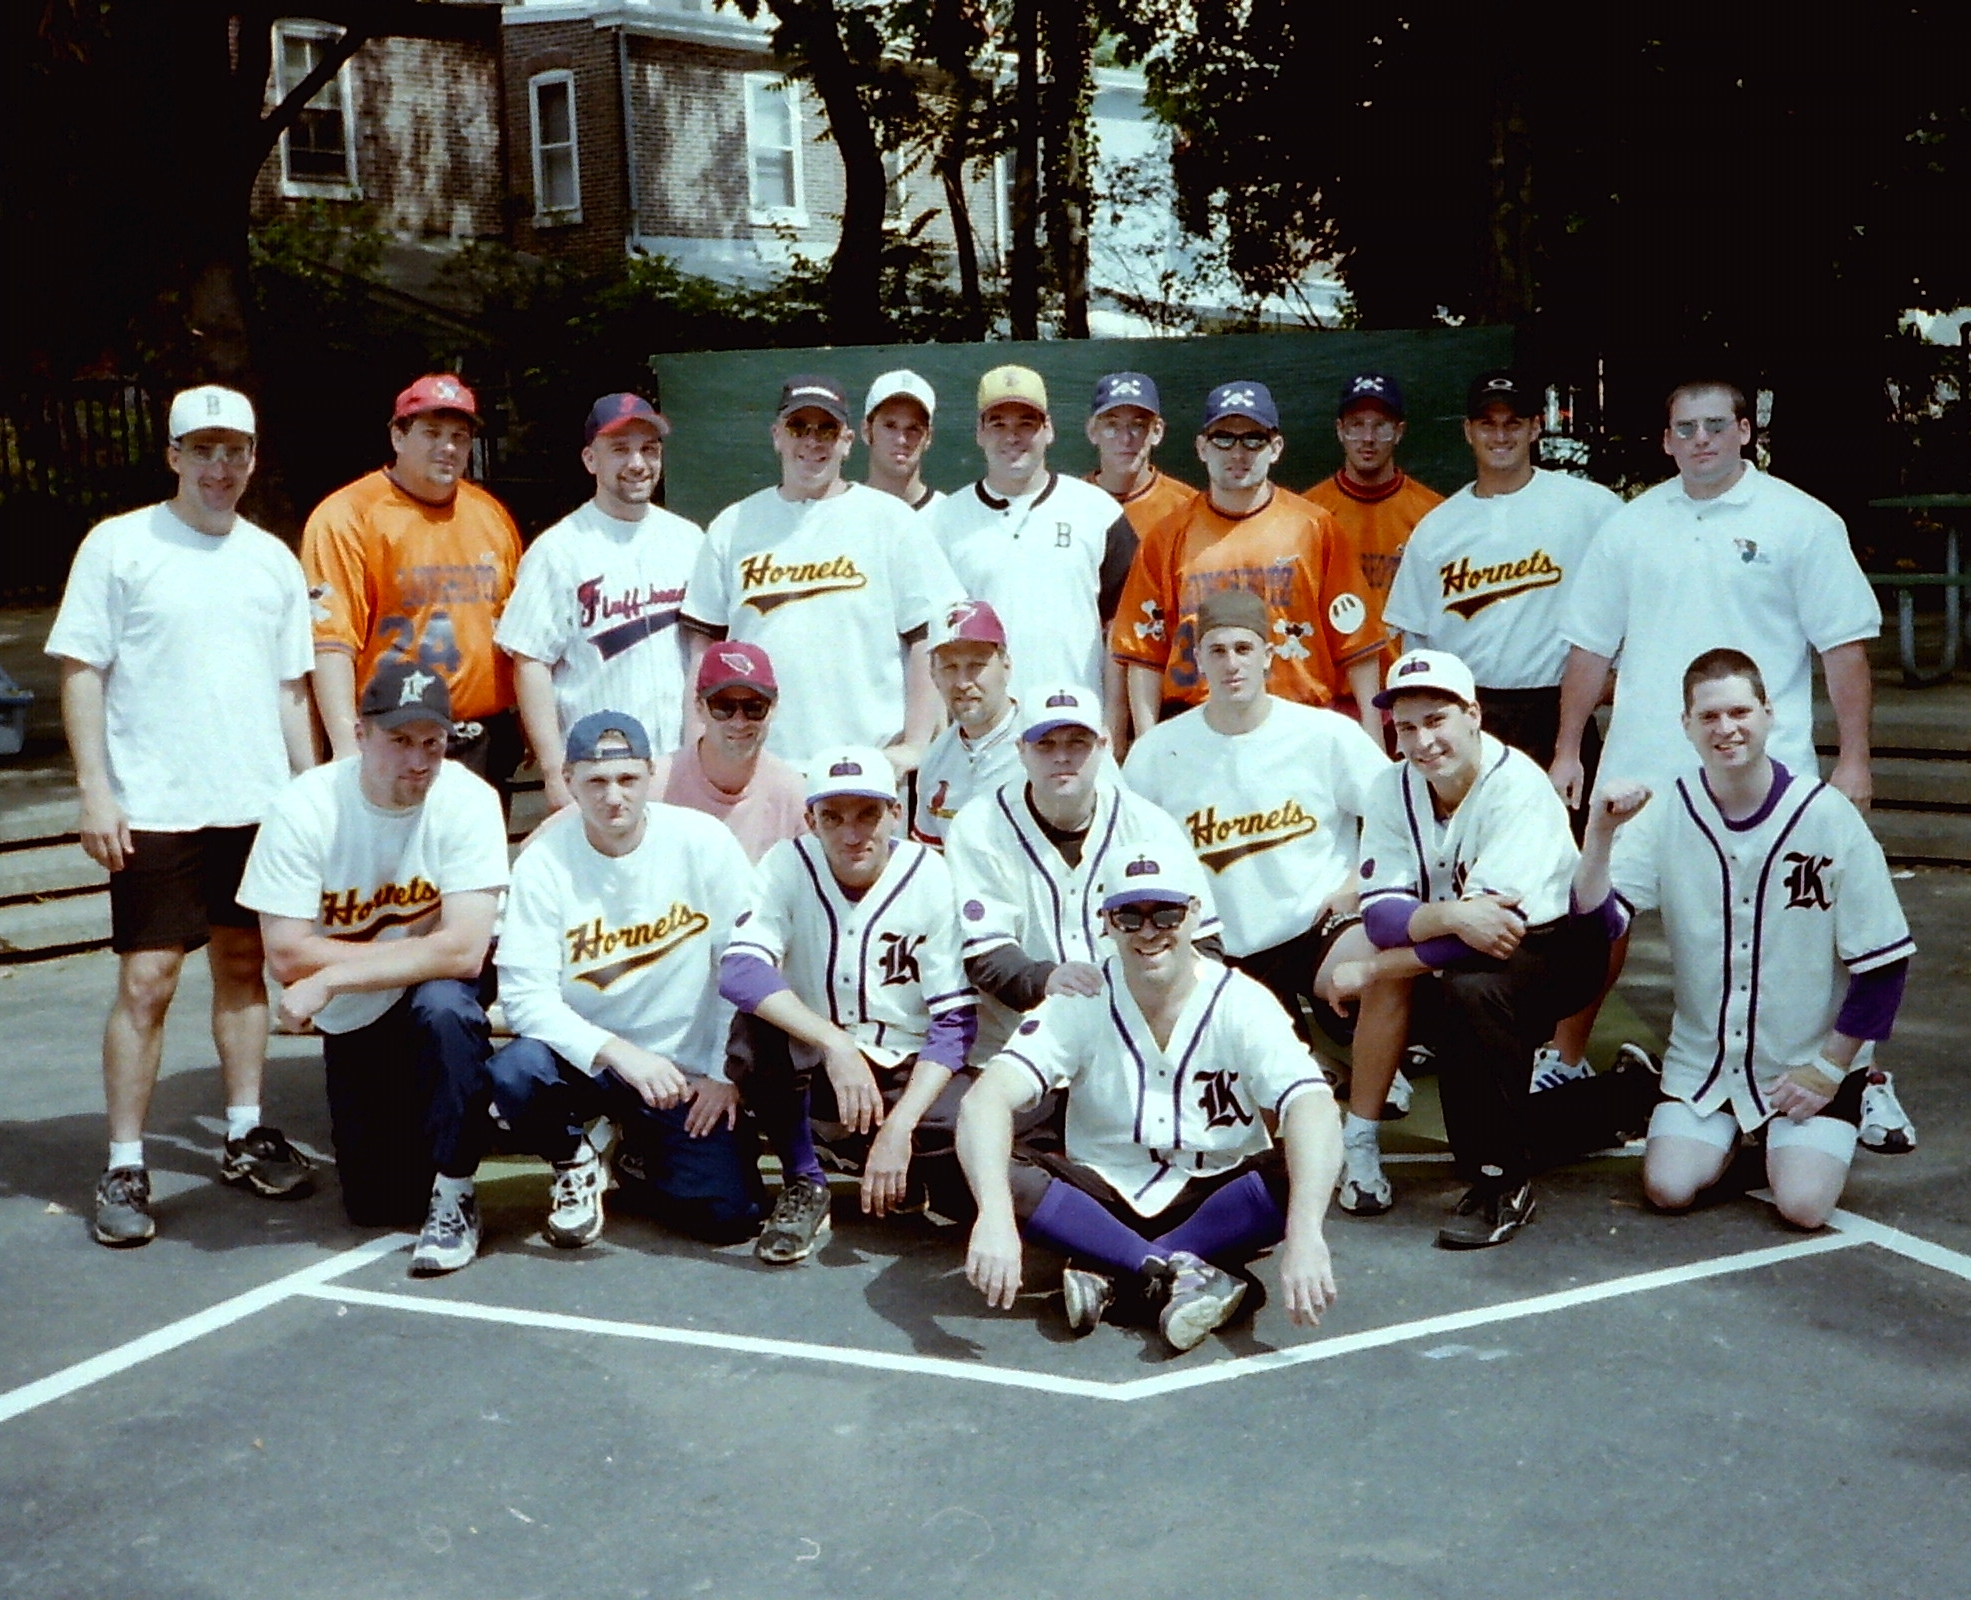 If a team was to be considered one of the best during the 1990's,  they had to play and win at Pat Pone Park. This picture - taken at Pat Pone just before the final day of the 1998 Summer Showdown - includes such illustrious teams as In the Box, Georgia Longshotz, Brown Hornets, Fluffheads, PA Cards, and Lakeside Kings.